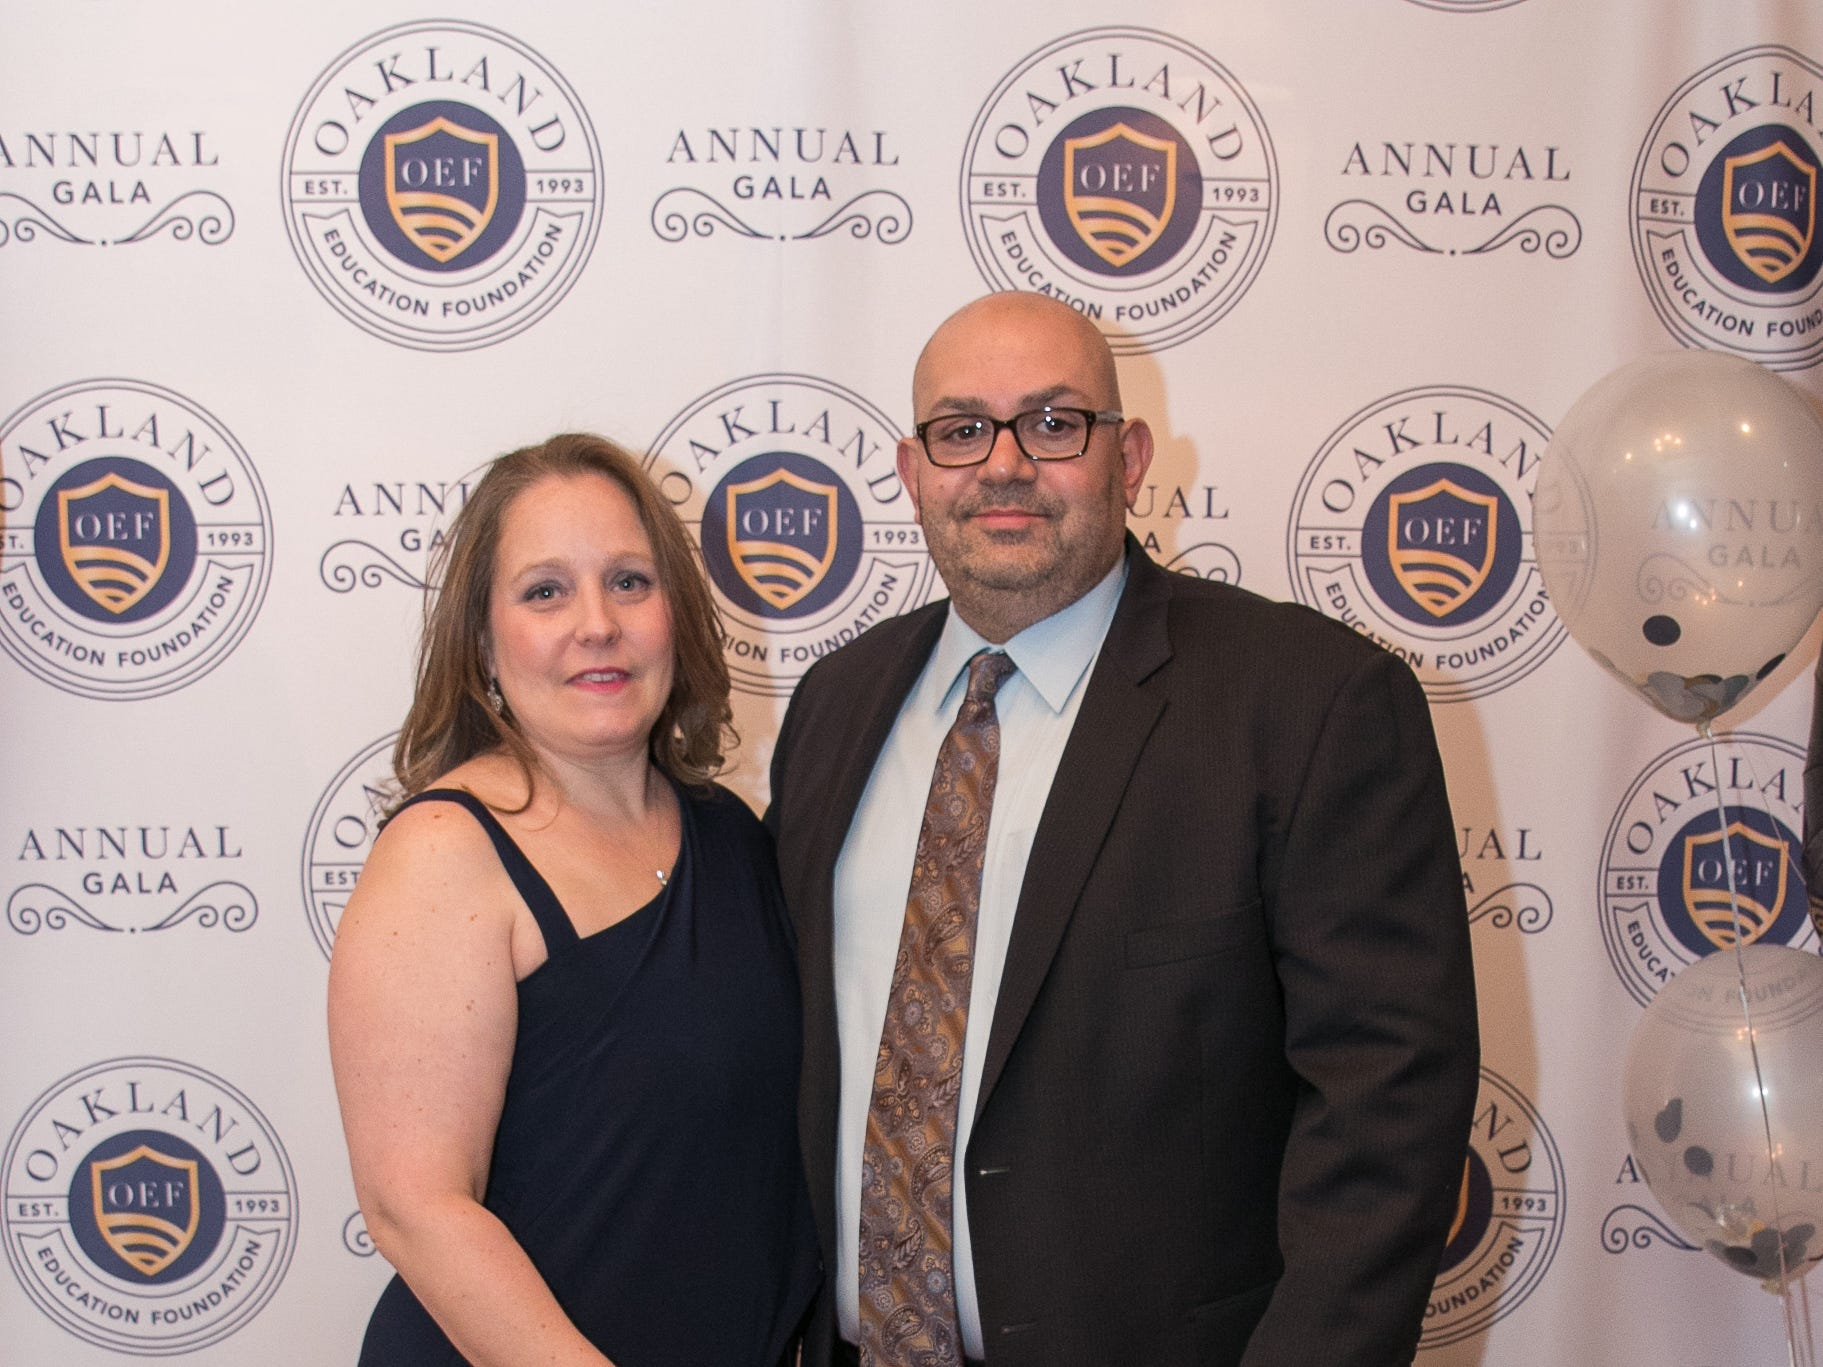 Alisha and Frank. The Oakland Education Foundation held their 25th Anniversary Casino Night Gala at Preakness Hills Country Club in Wayne. 03/16/2019